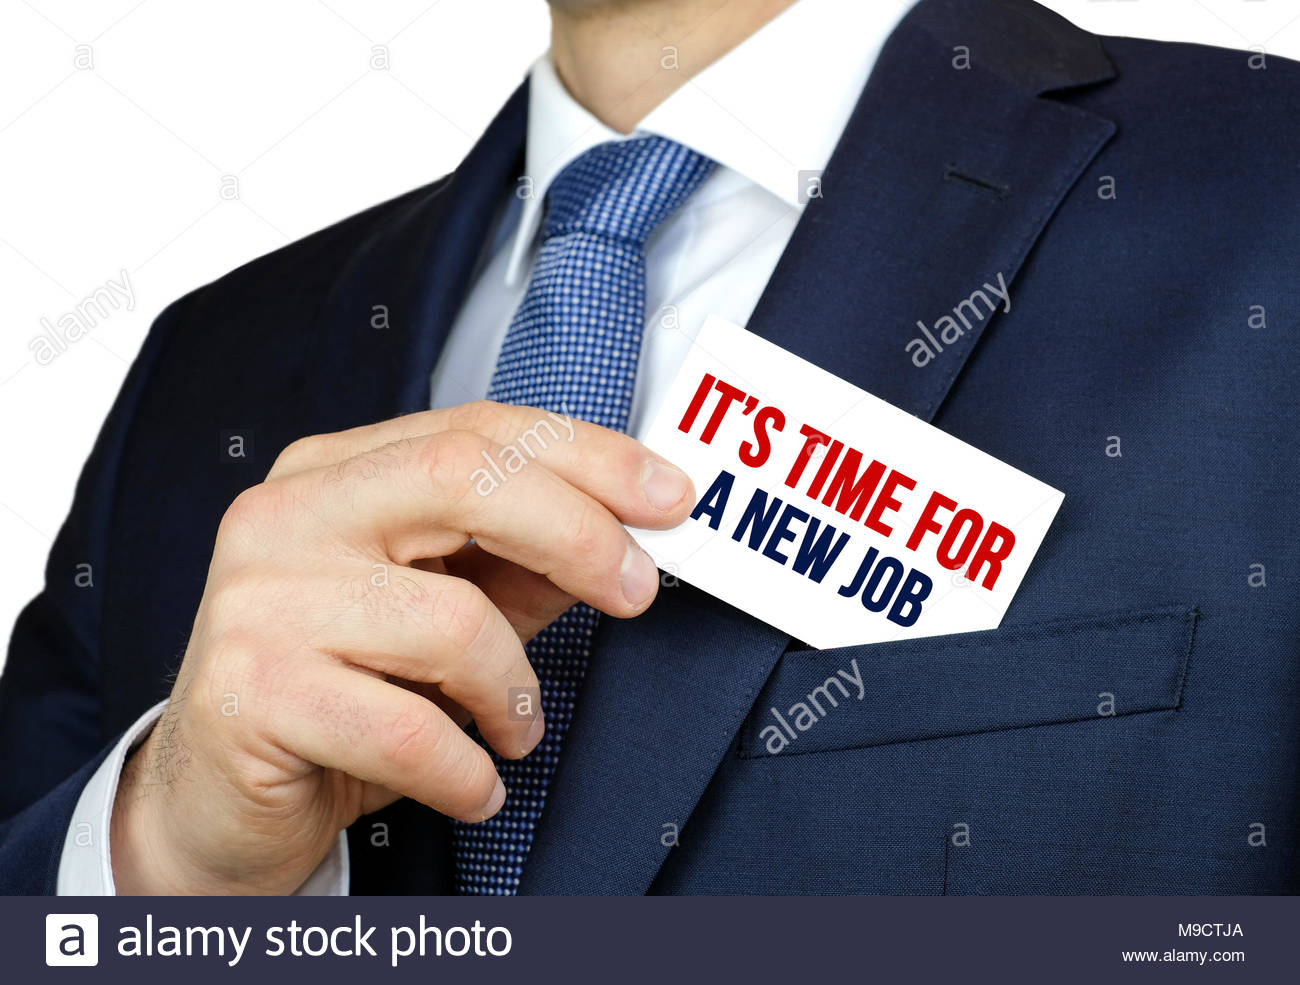 it is time for a new job - career concept - Stock Image